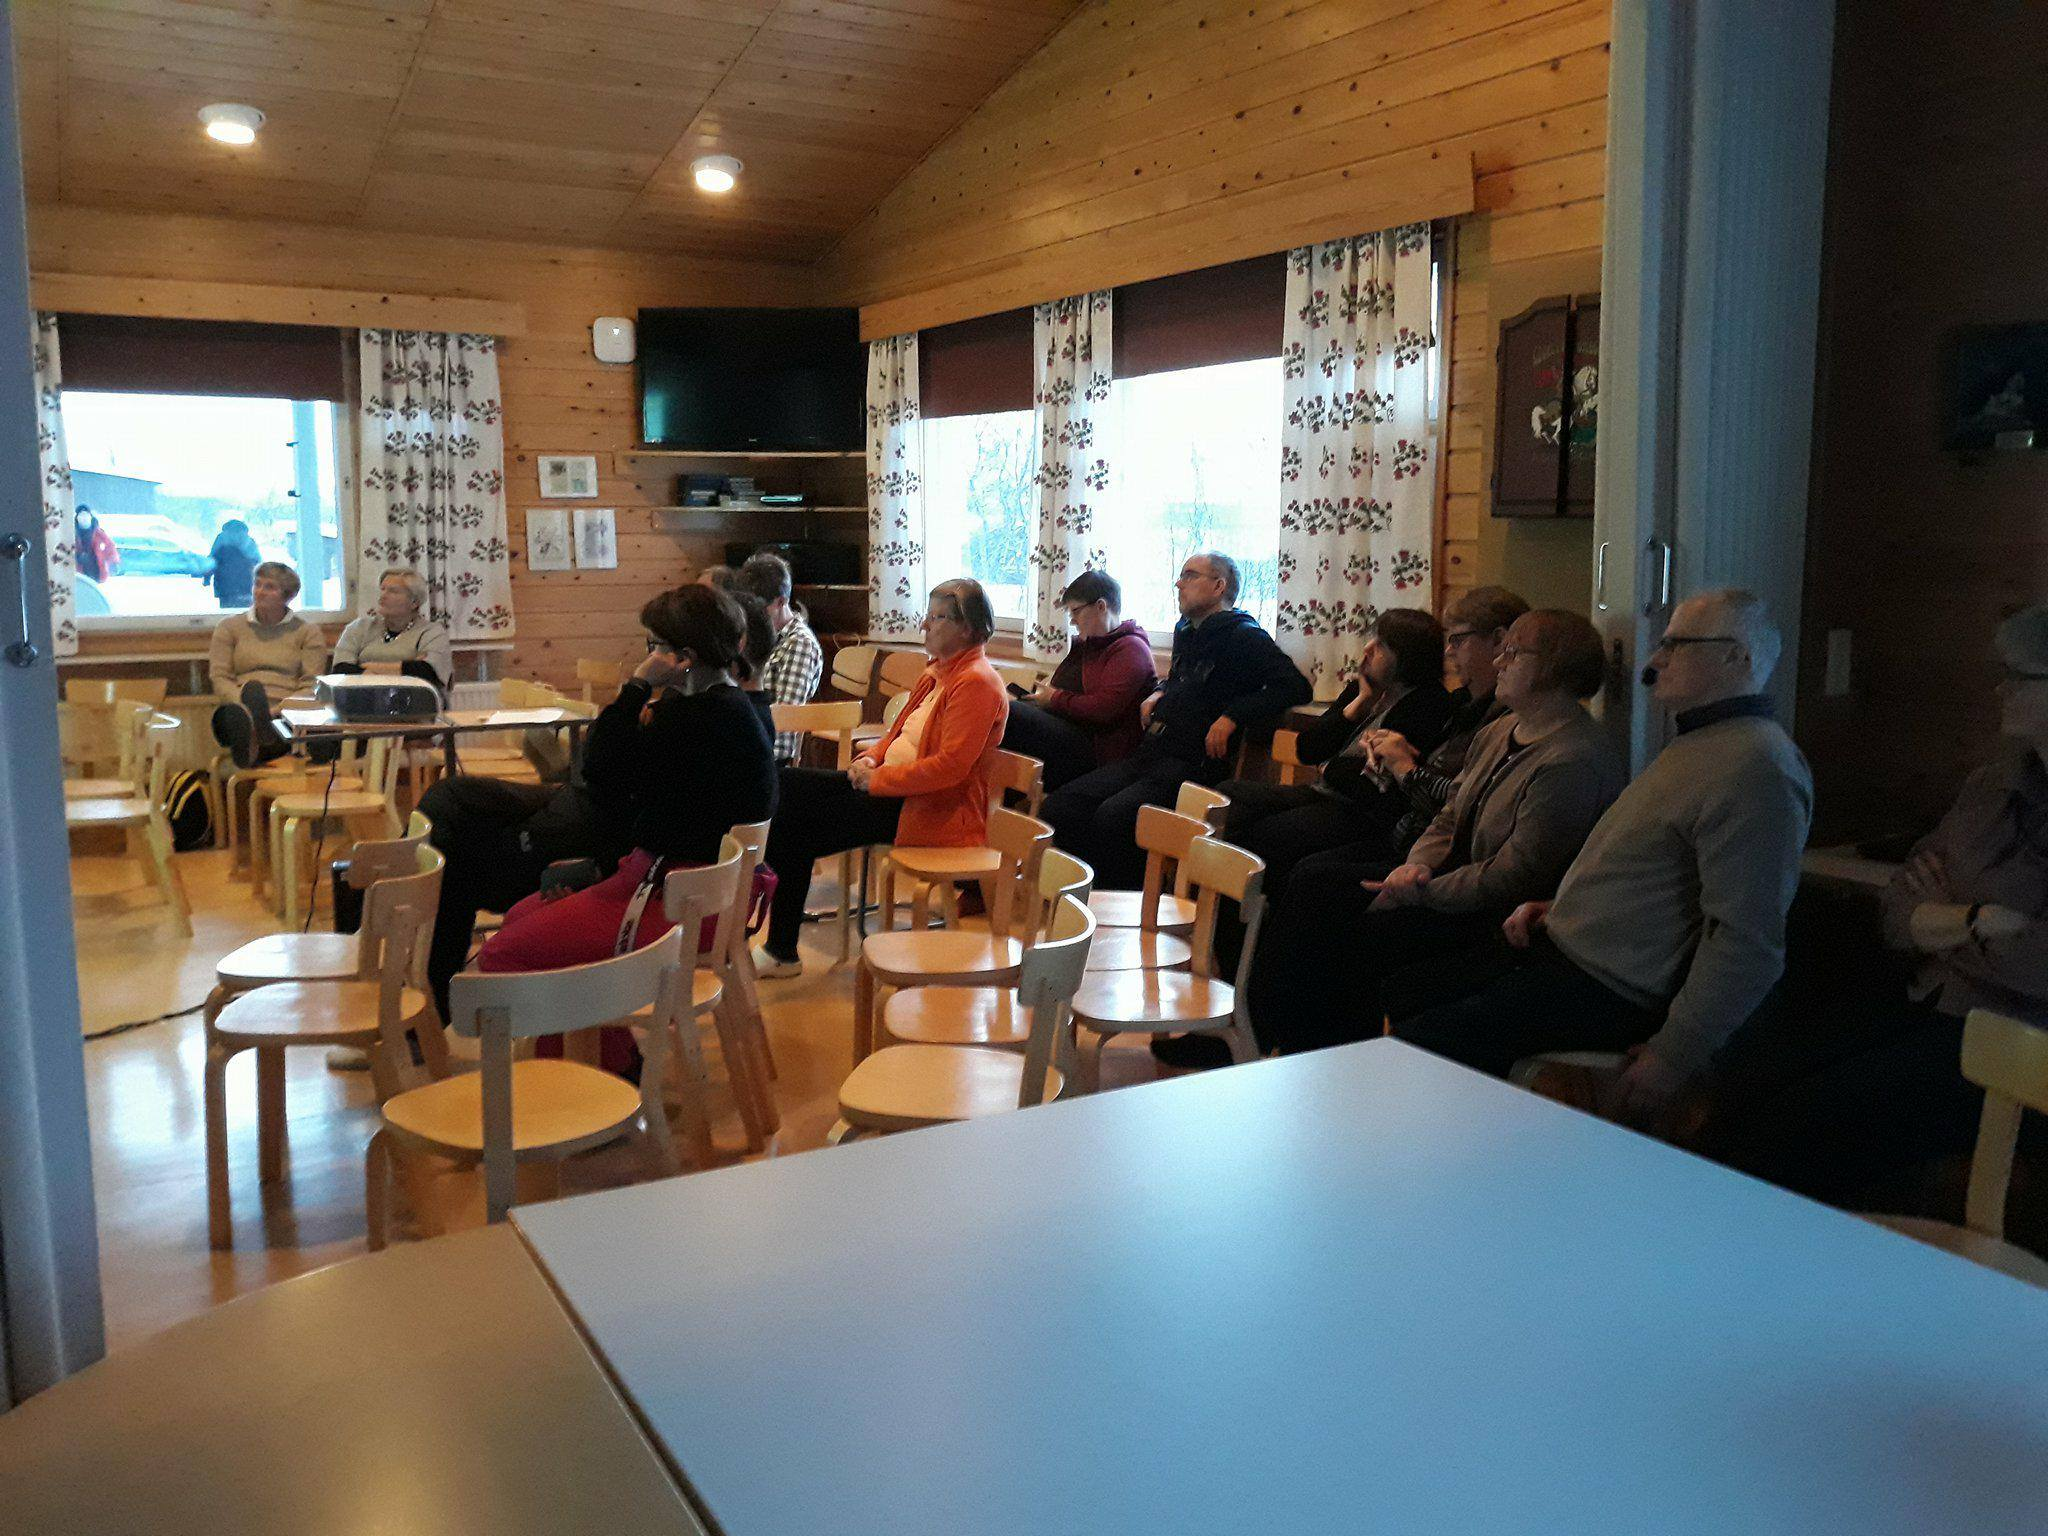 Apublic lecture at Kilpisjärvi Biological Station